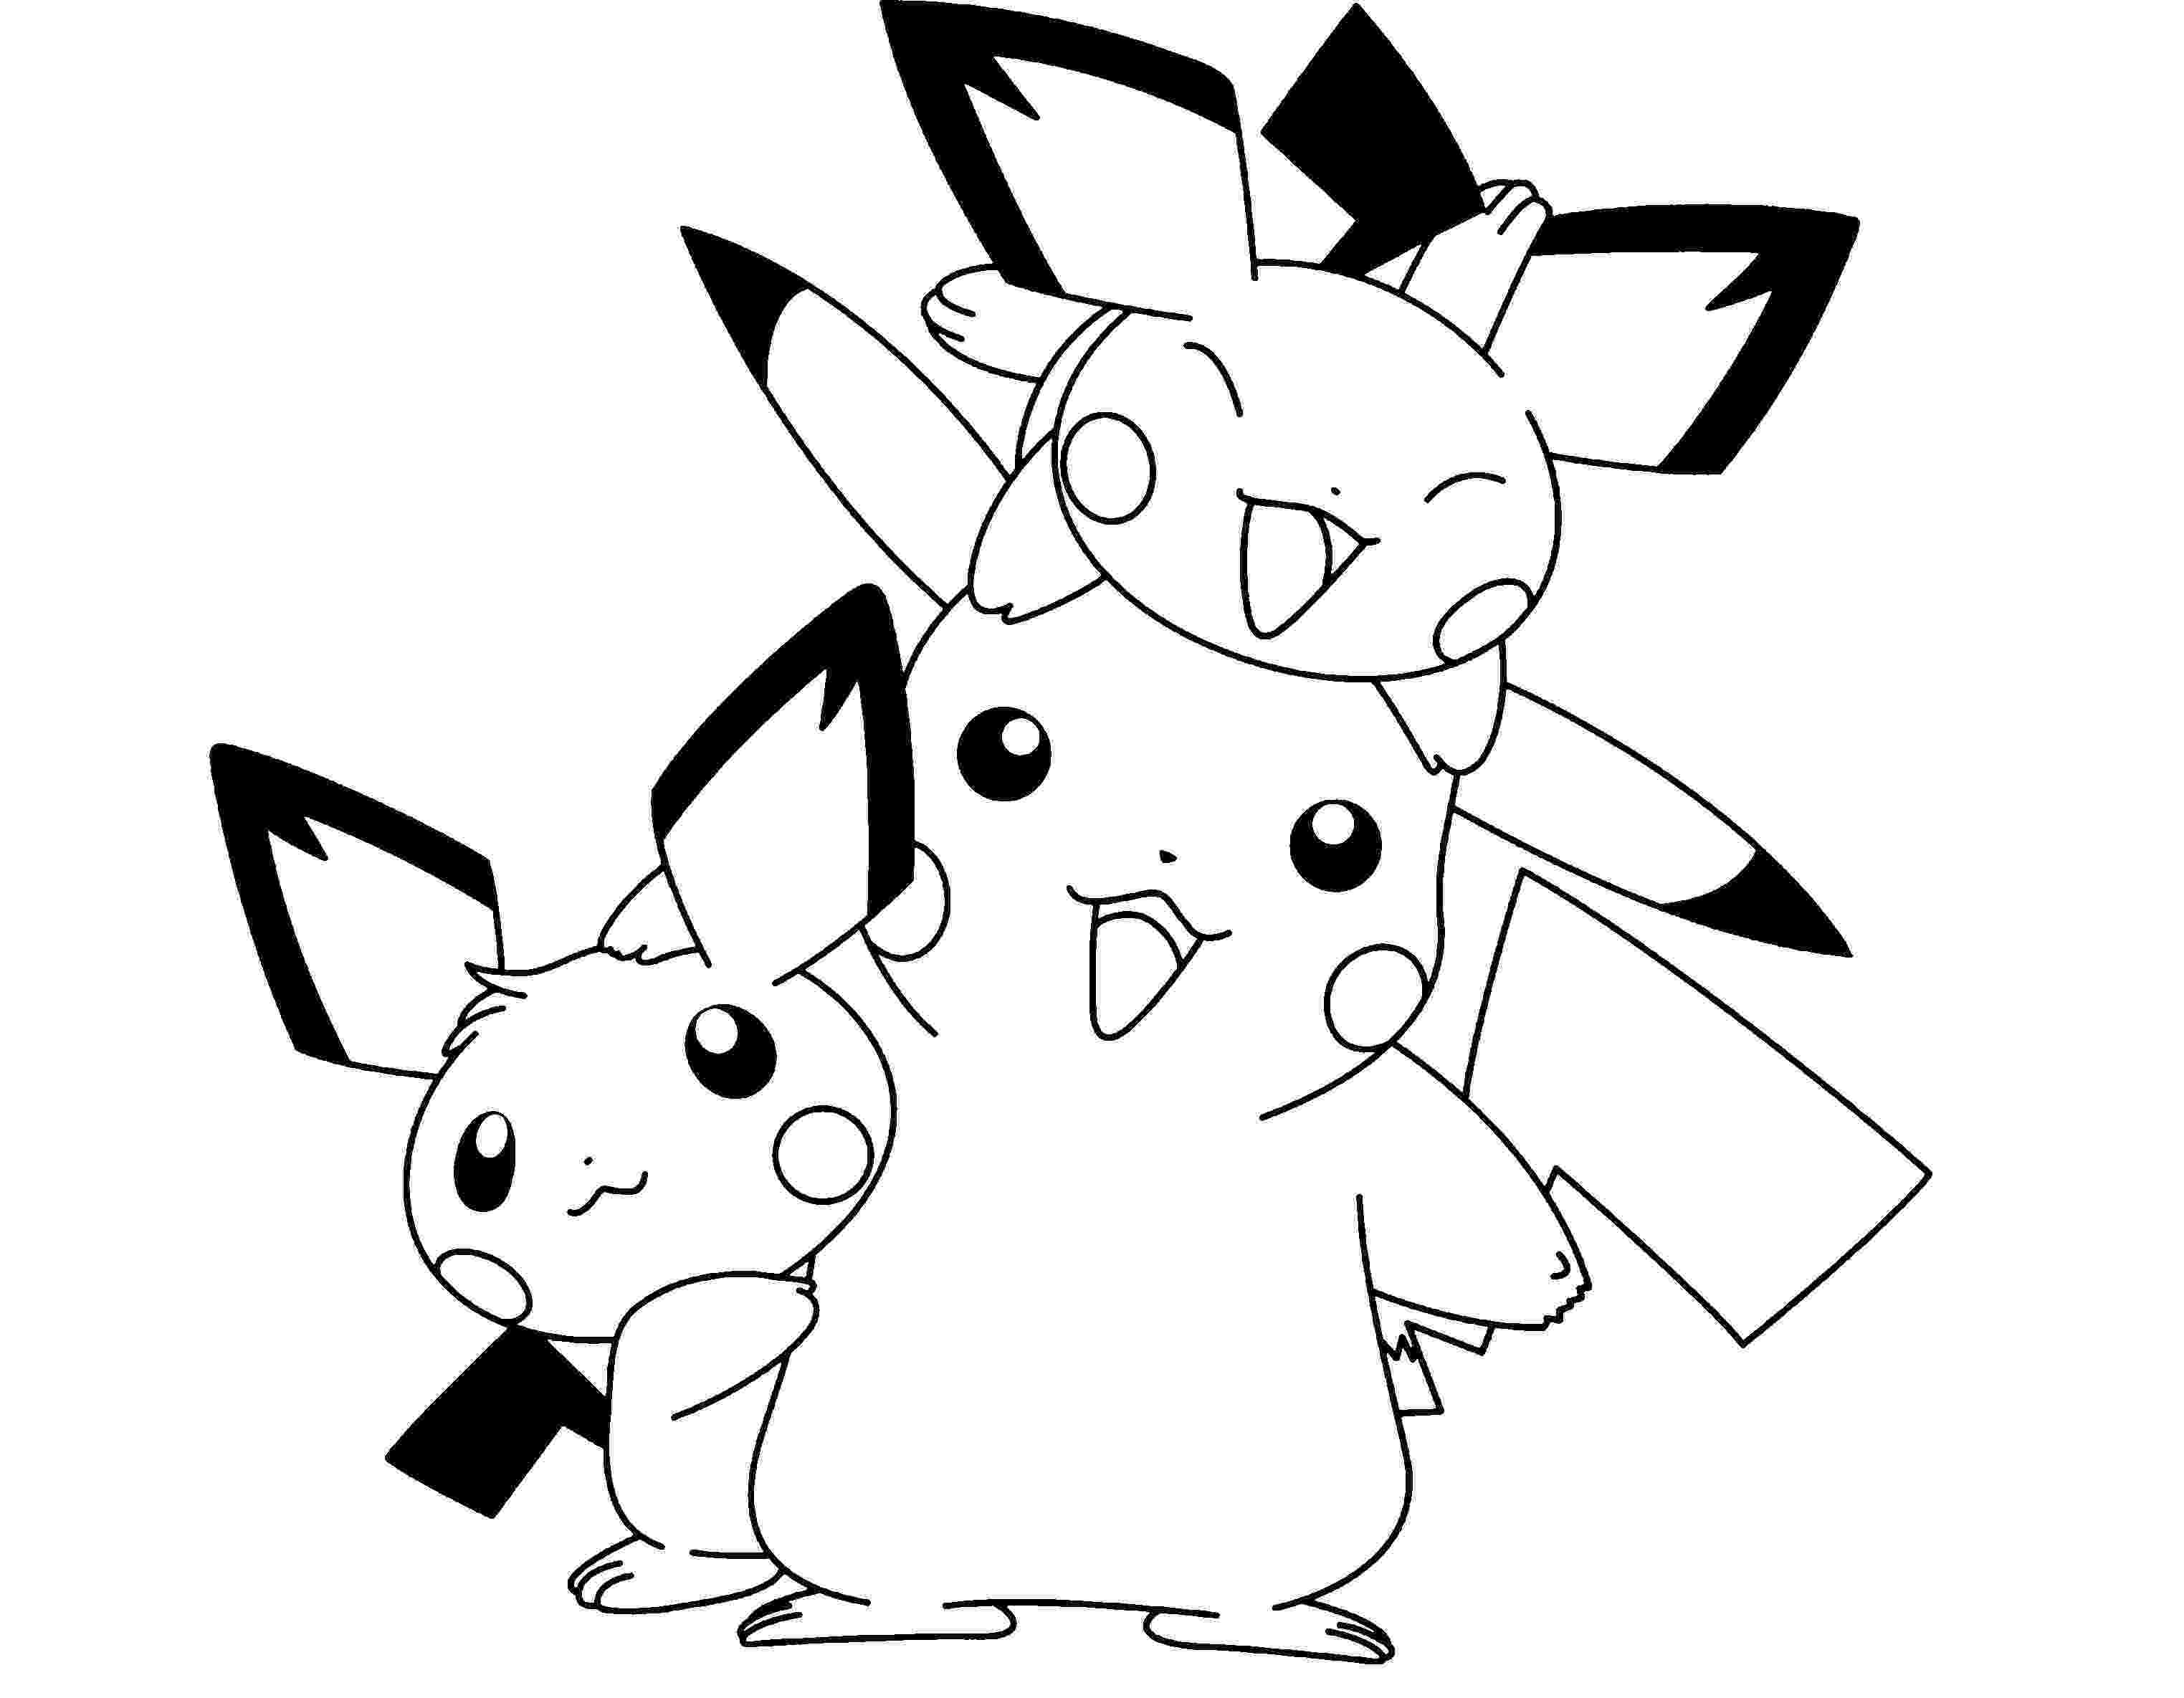 coloring pages for pokemon pokémon go pikachu waving super coloring pokemon coloring pages pokemon for